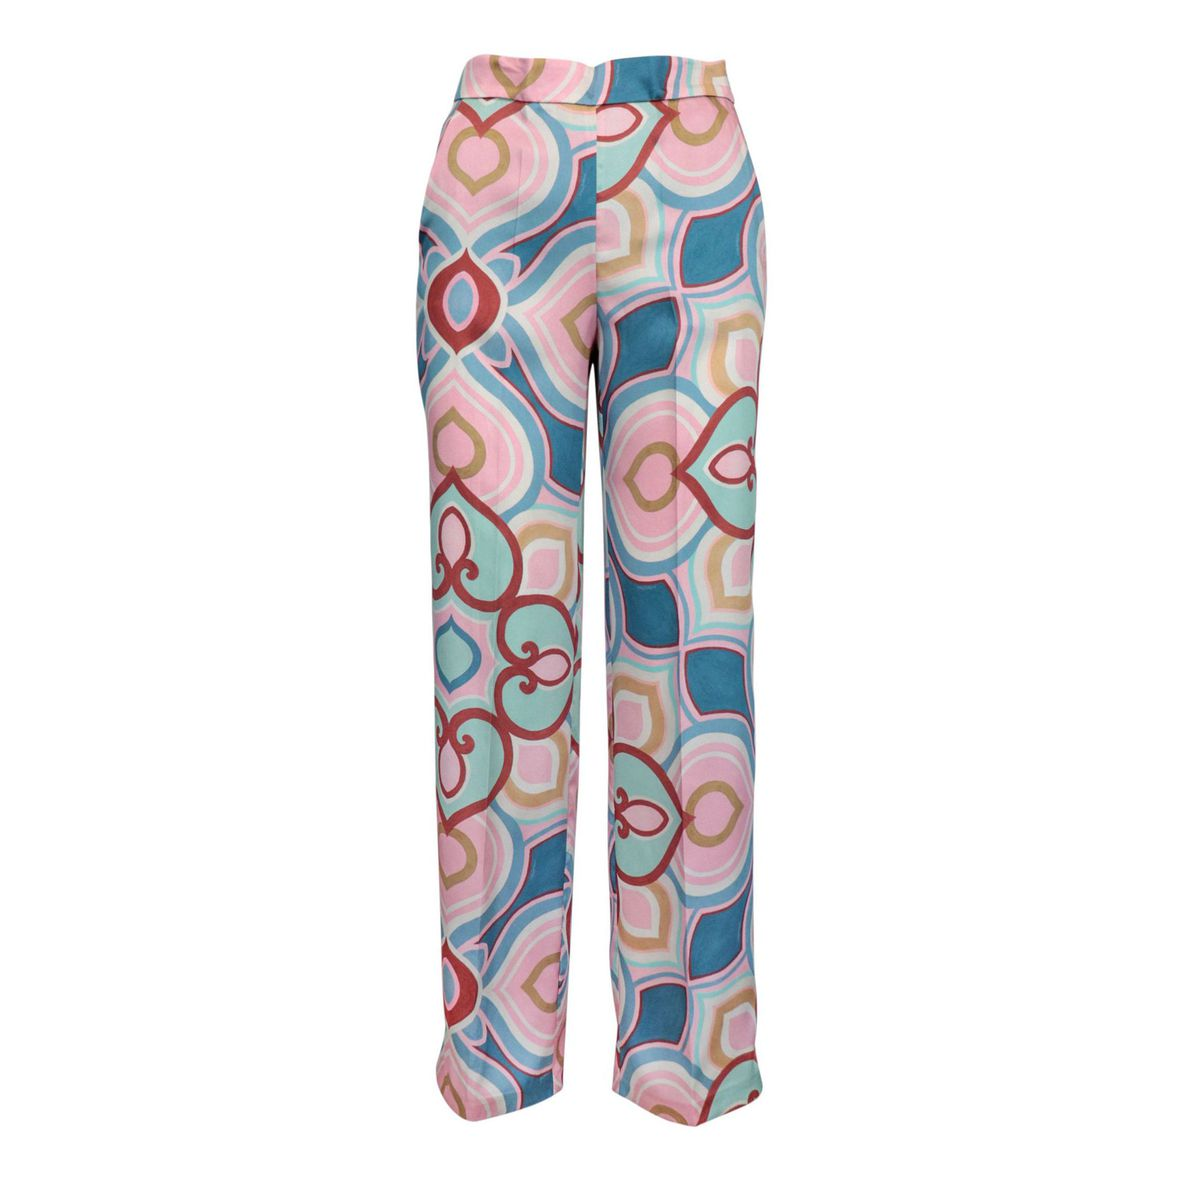 Satin-effect tube trousers with patterned print and ironed crease Blue / pink Maliparmi